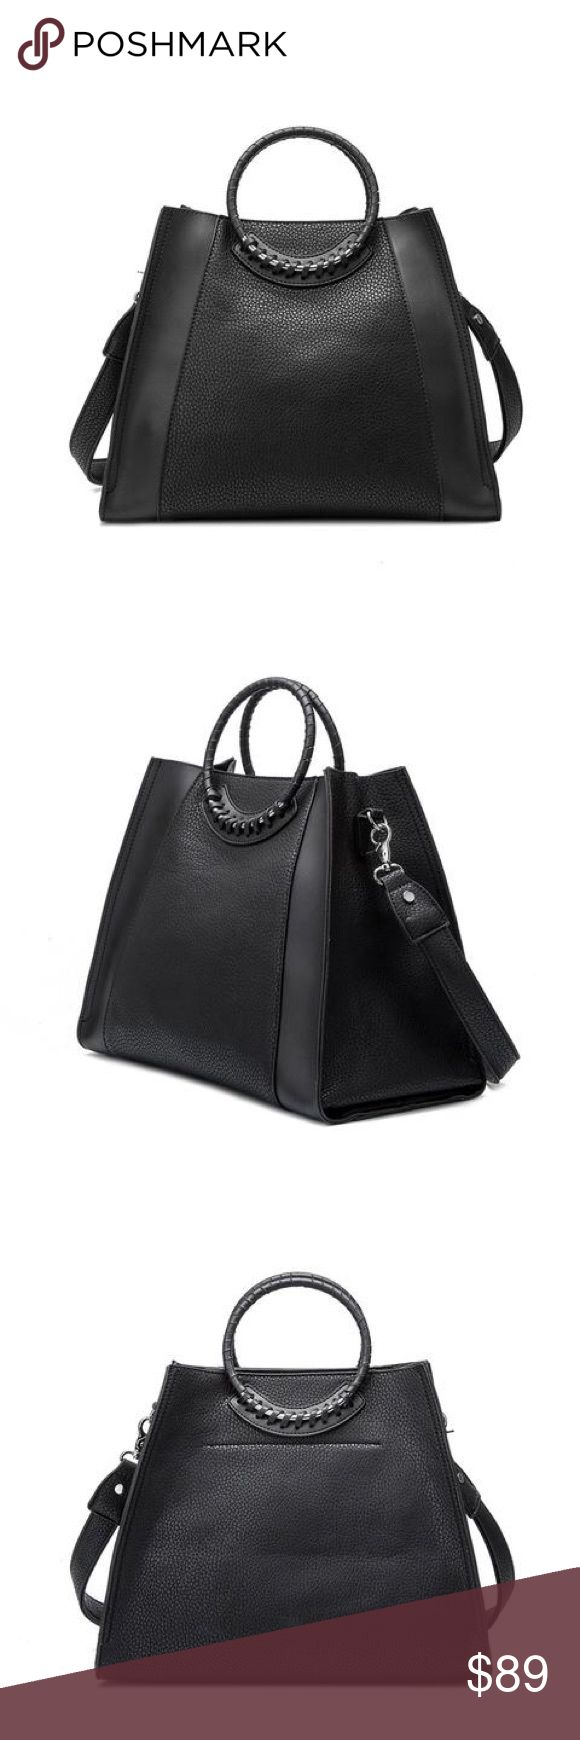 "Melie Bianco Louise Woven Handle shoulder bag This beauty is for the independent women. Stylish and casual chic. Premium vegan leather. Middle top zipper . Interior slim pockets and interior zipper pocket. 14""Lx 4.5W x 12H. In black #meliebianco Melie Bianco Bags Shoulder Bags"